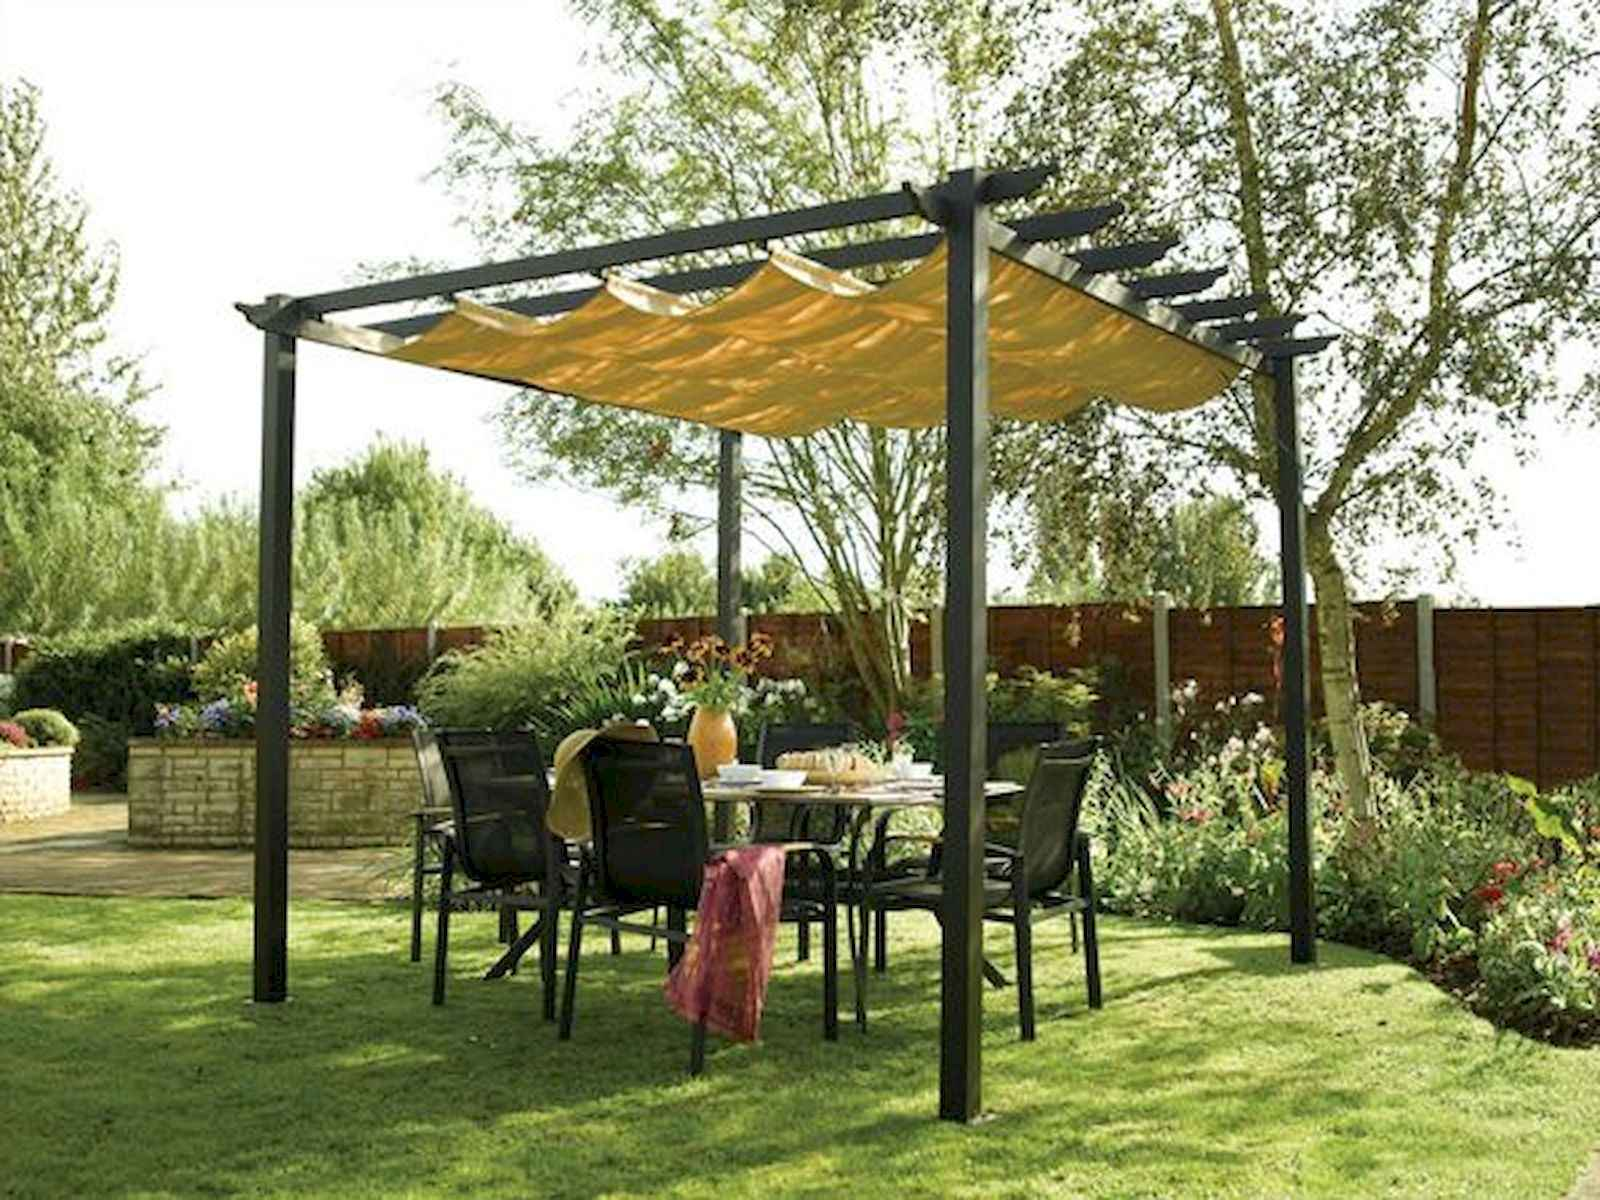 80 DIY Summery Backyard Projects Ideas Make Your Summer Awesome (2)